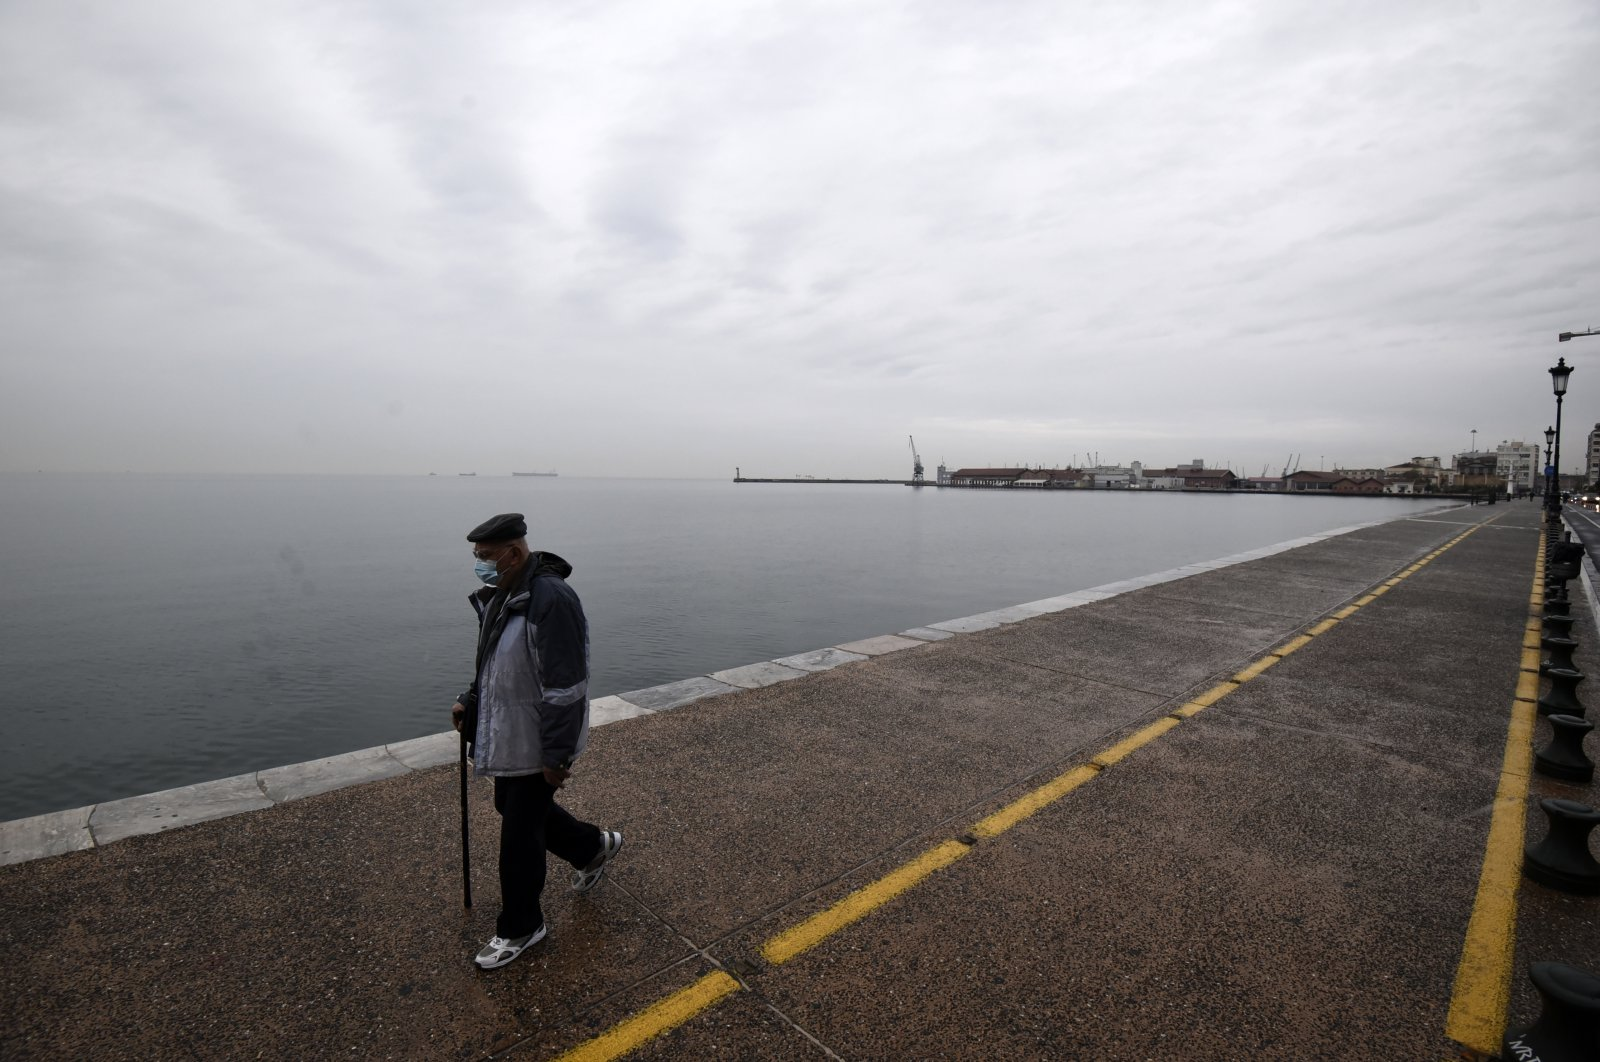 A pedestrian wearing a mask against the spread of COVID-19 walks on a coastal avenue during the lockdown in the northern city of Thessaloniki, Greece, Nov. 3, 2020. (AP Photo)